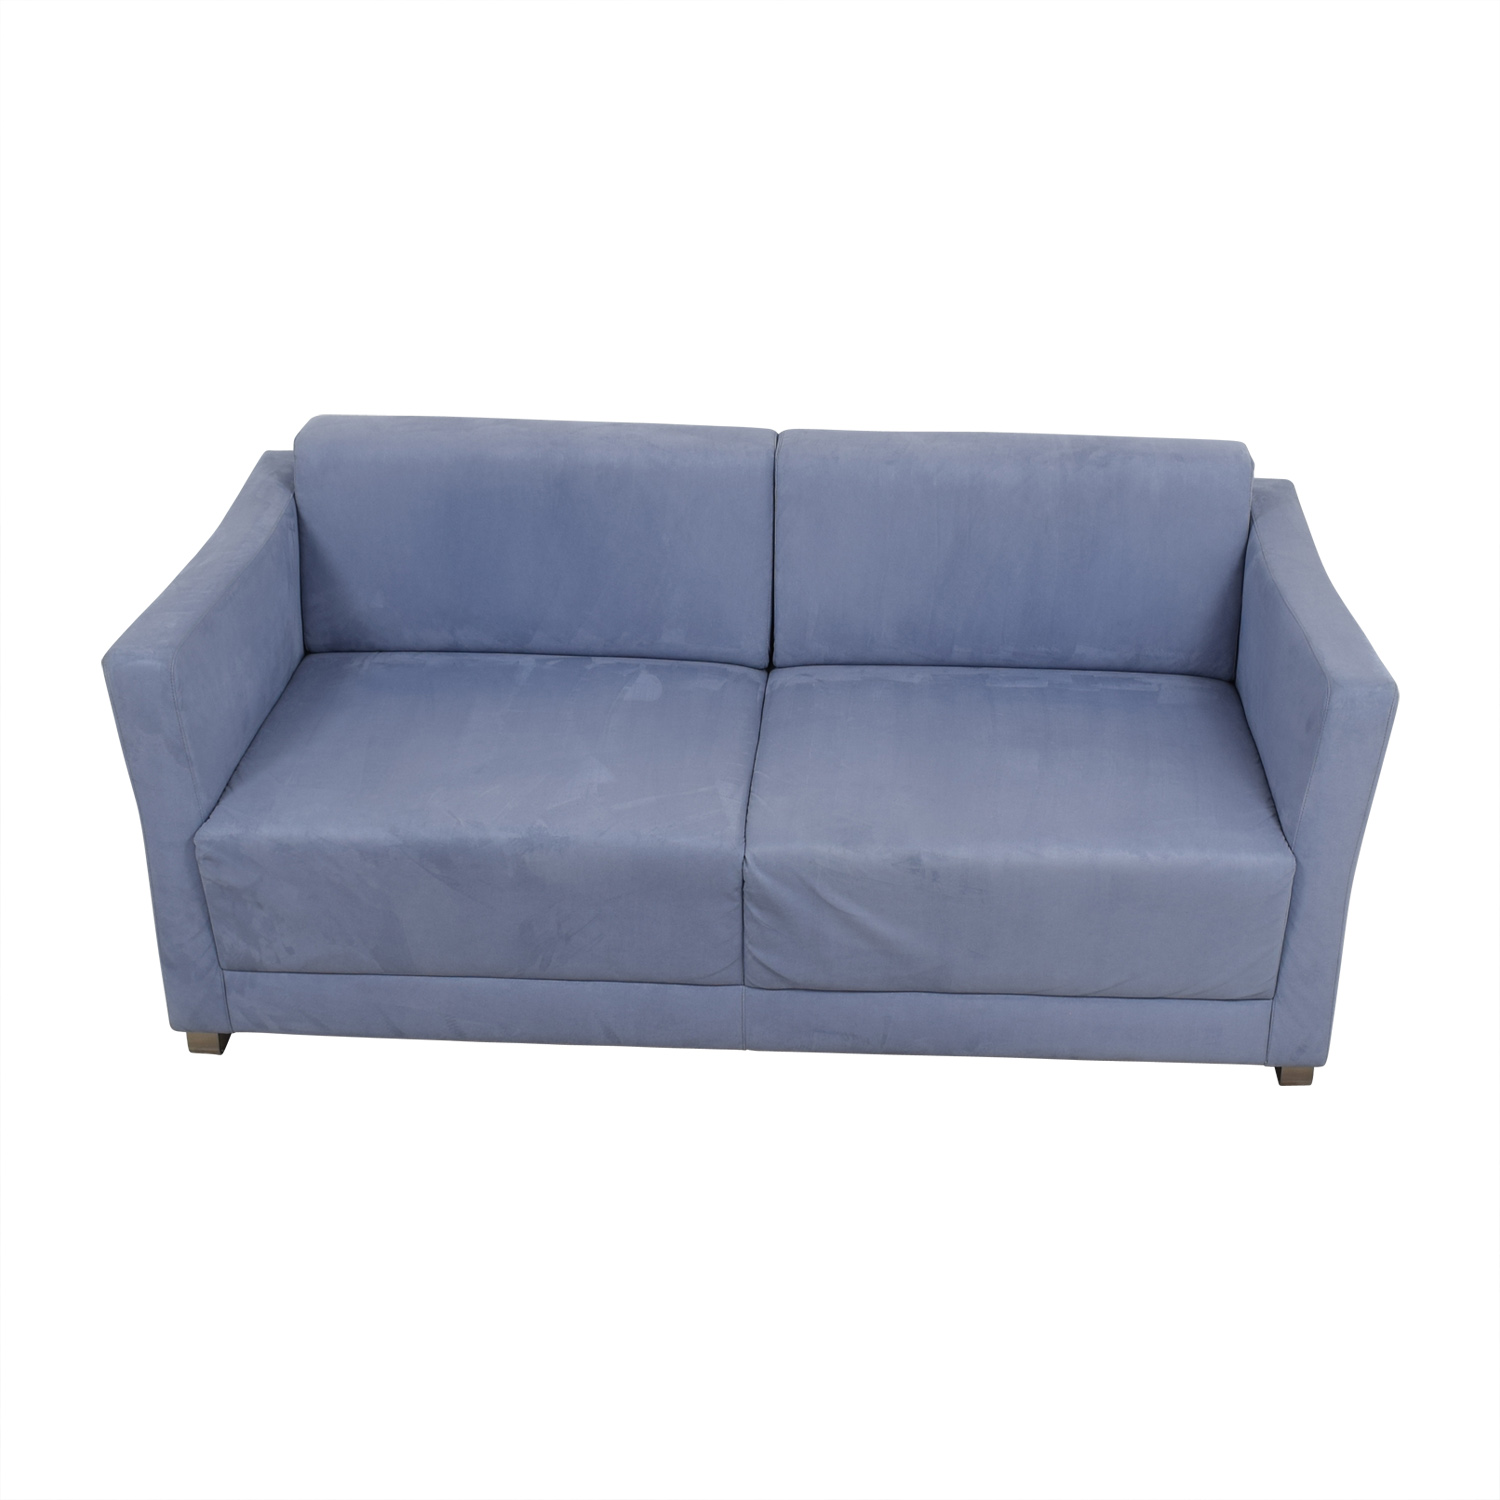 ... Bernhardtt Bernhardt Milix Light Blue Sofa For Sale ...